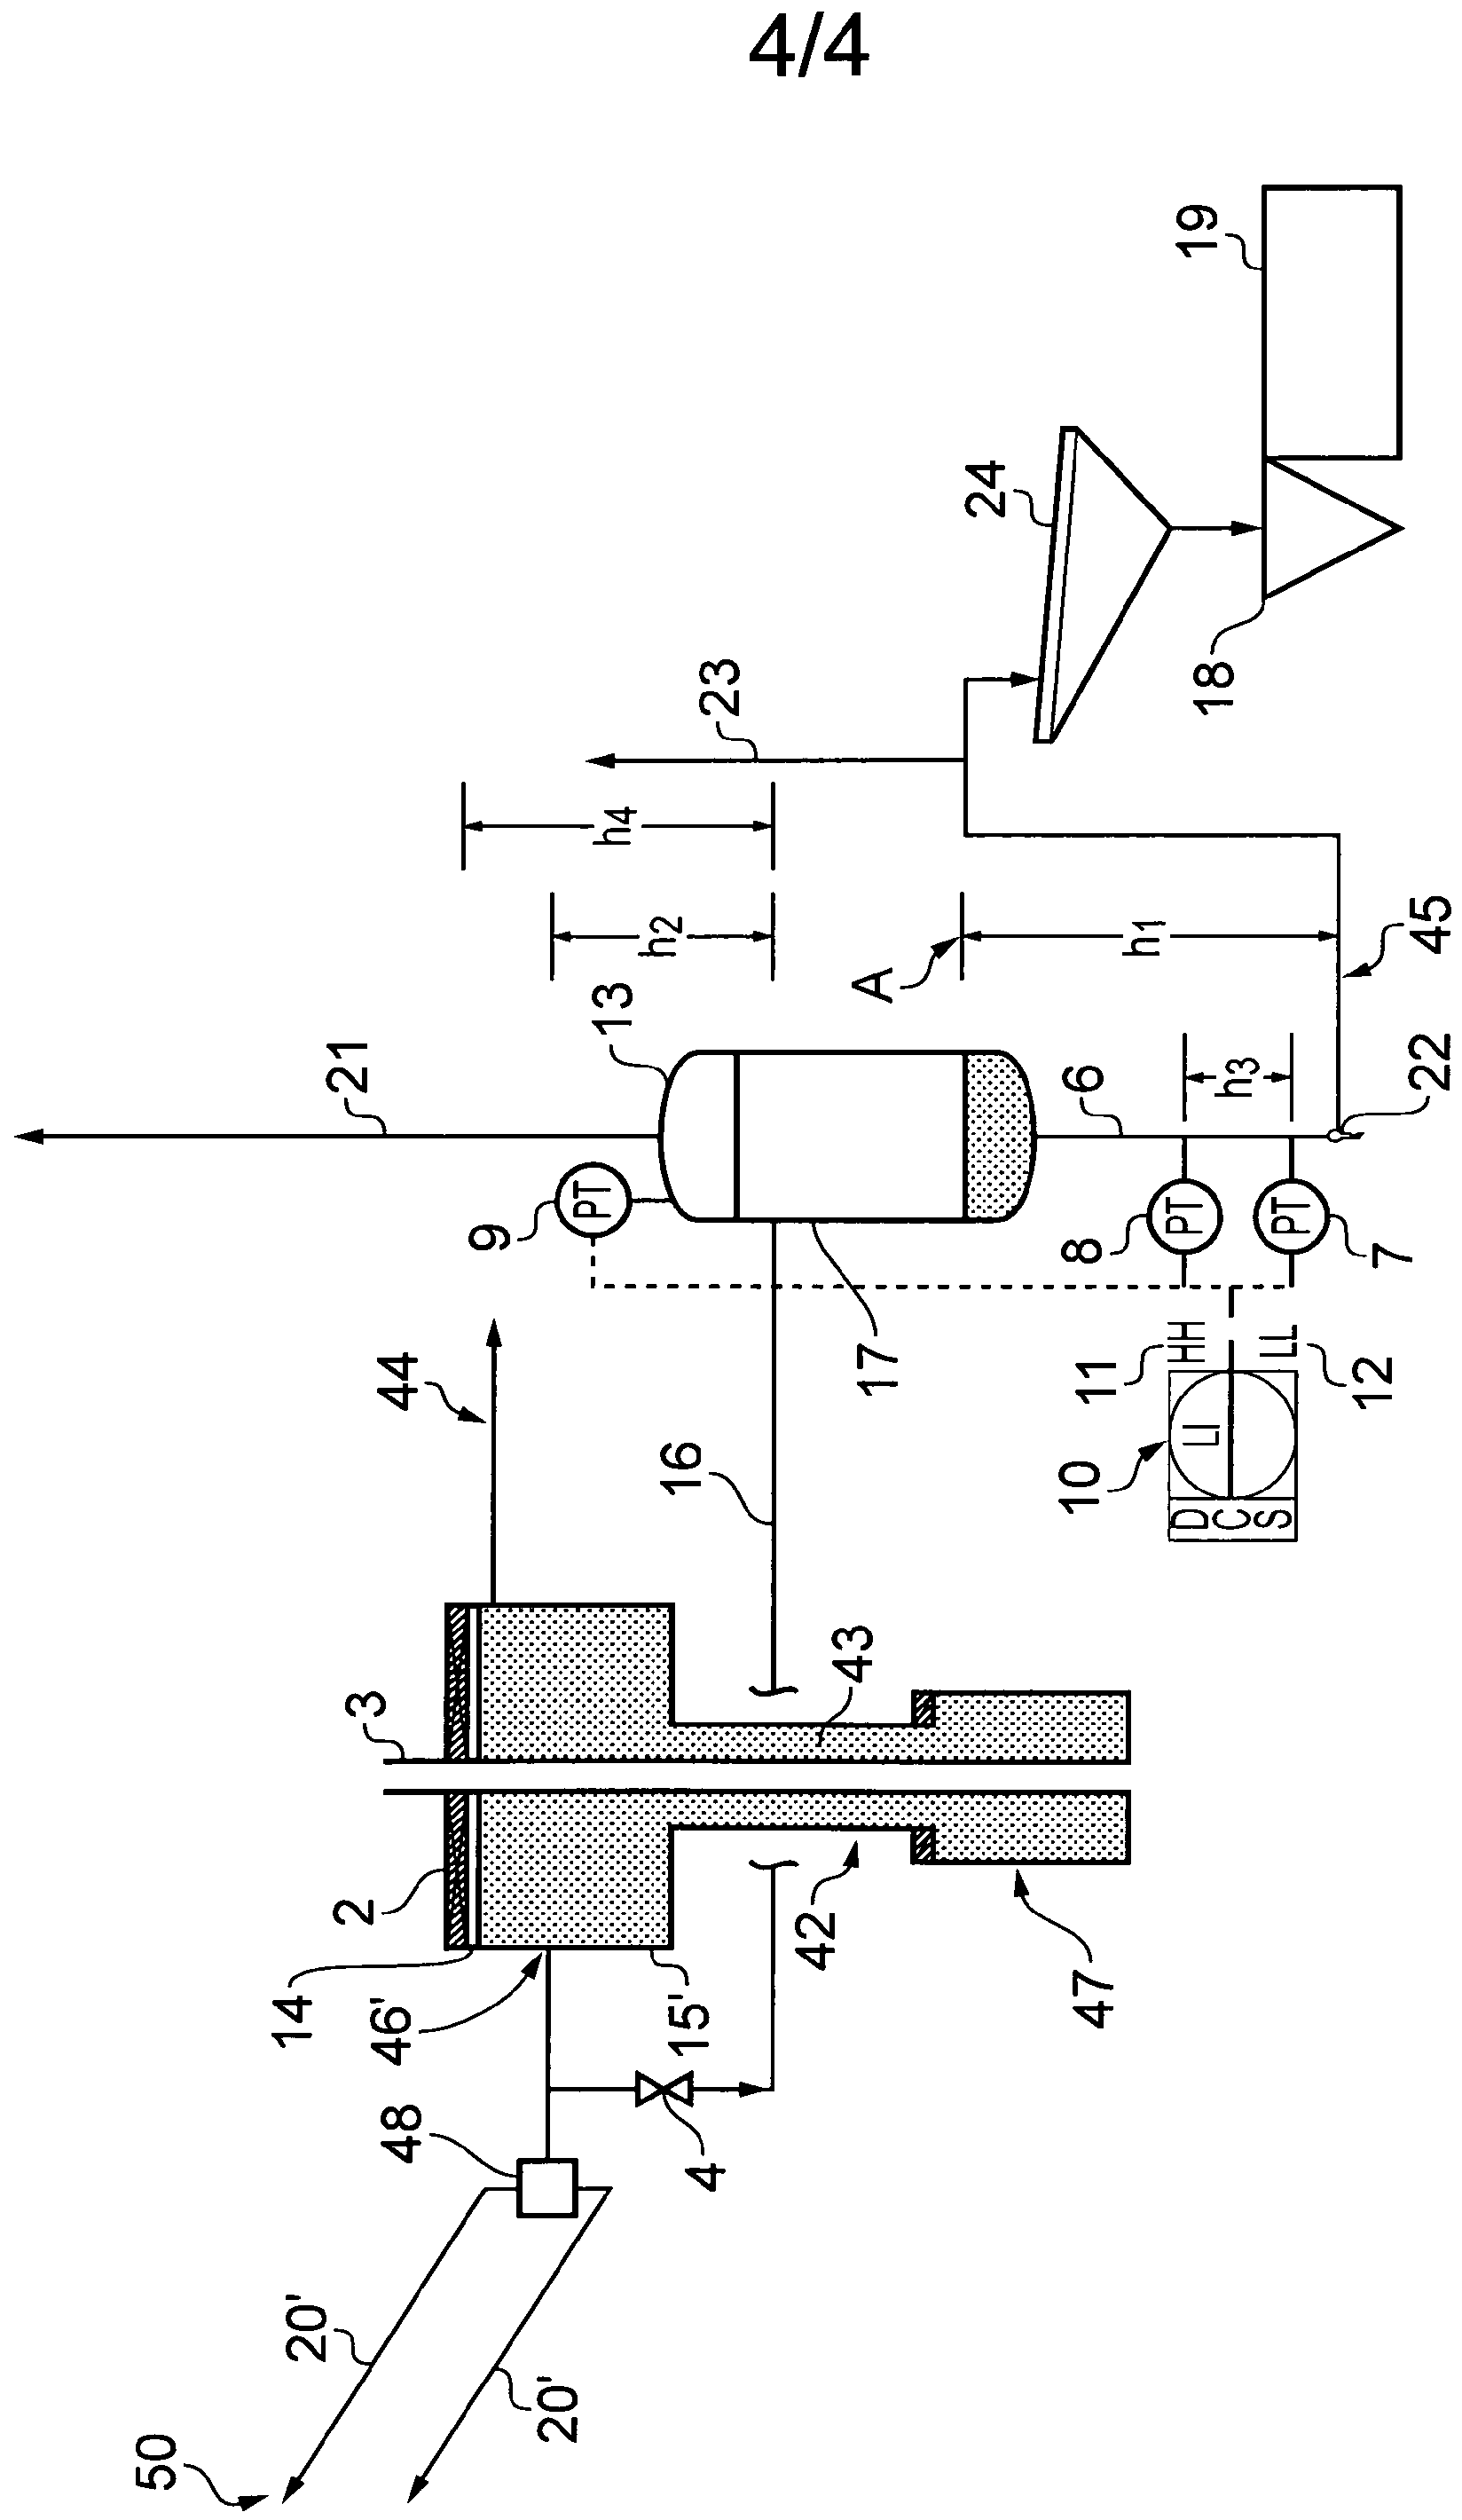 Marine Transmission Diagrams As Well As Patent Us8715022 Marine Vessel